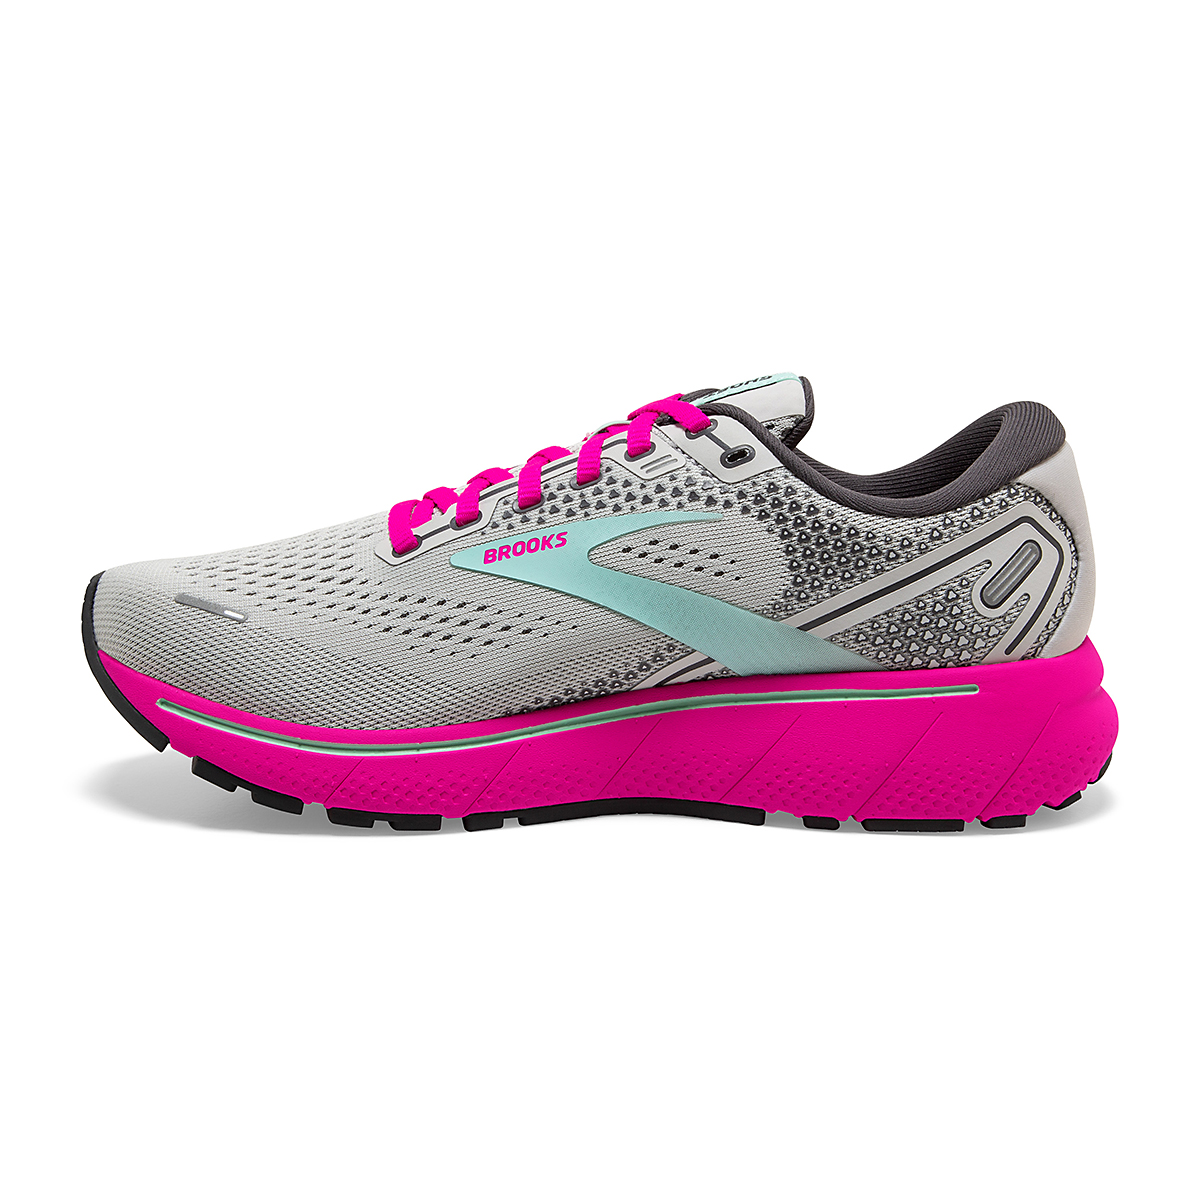 Women's Brooks Ghost 14 Running Shoe - Color: Oyster/Yucca/Pink - Size: 5 - Width: Regular, Oyster/Yucca/Pink, large, image 4